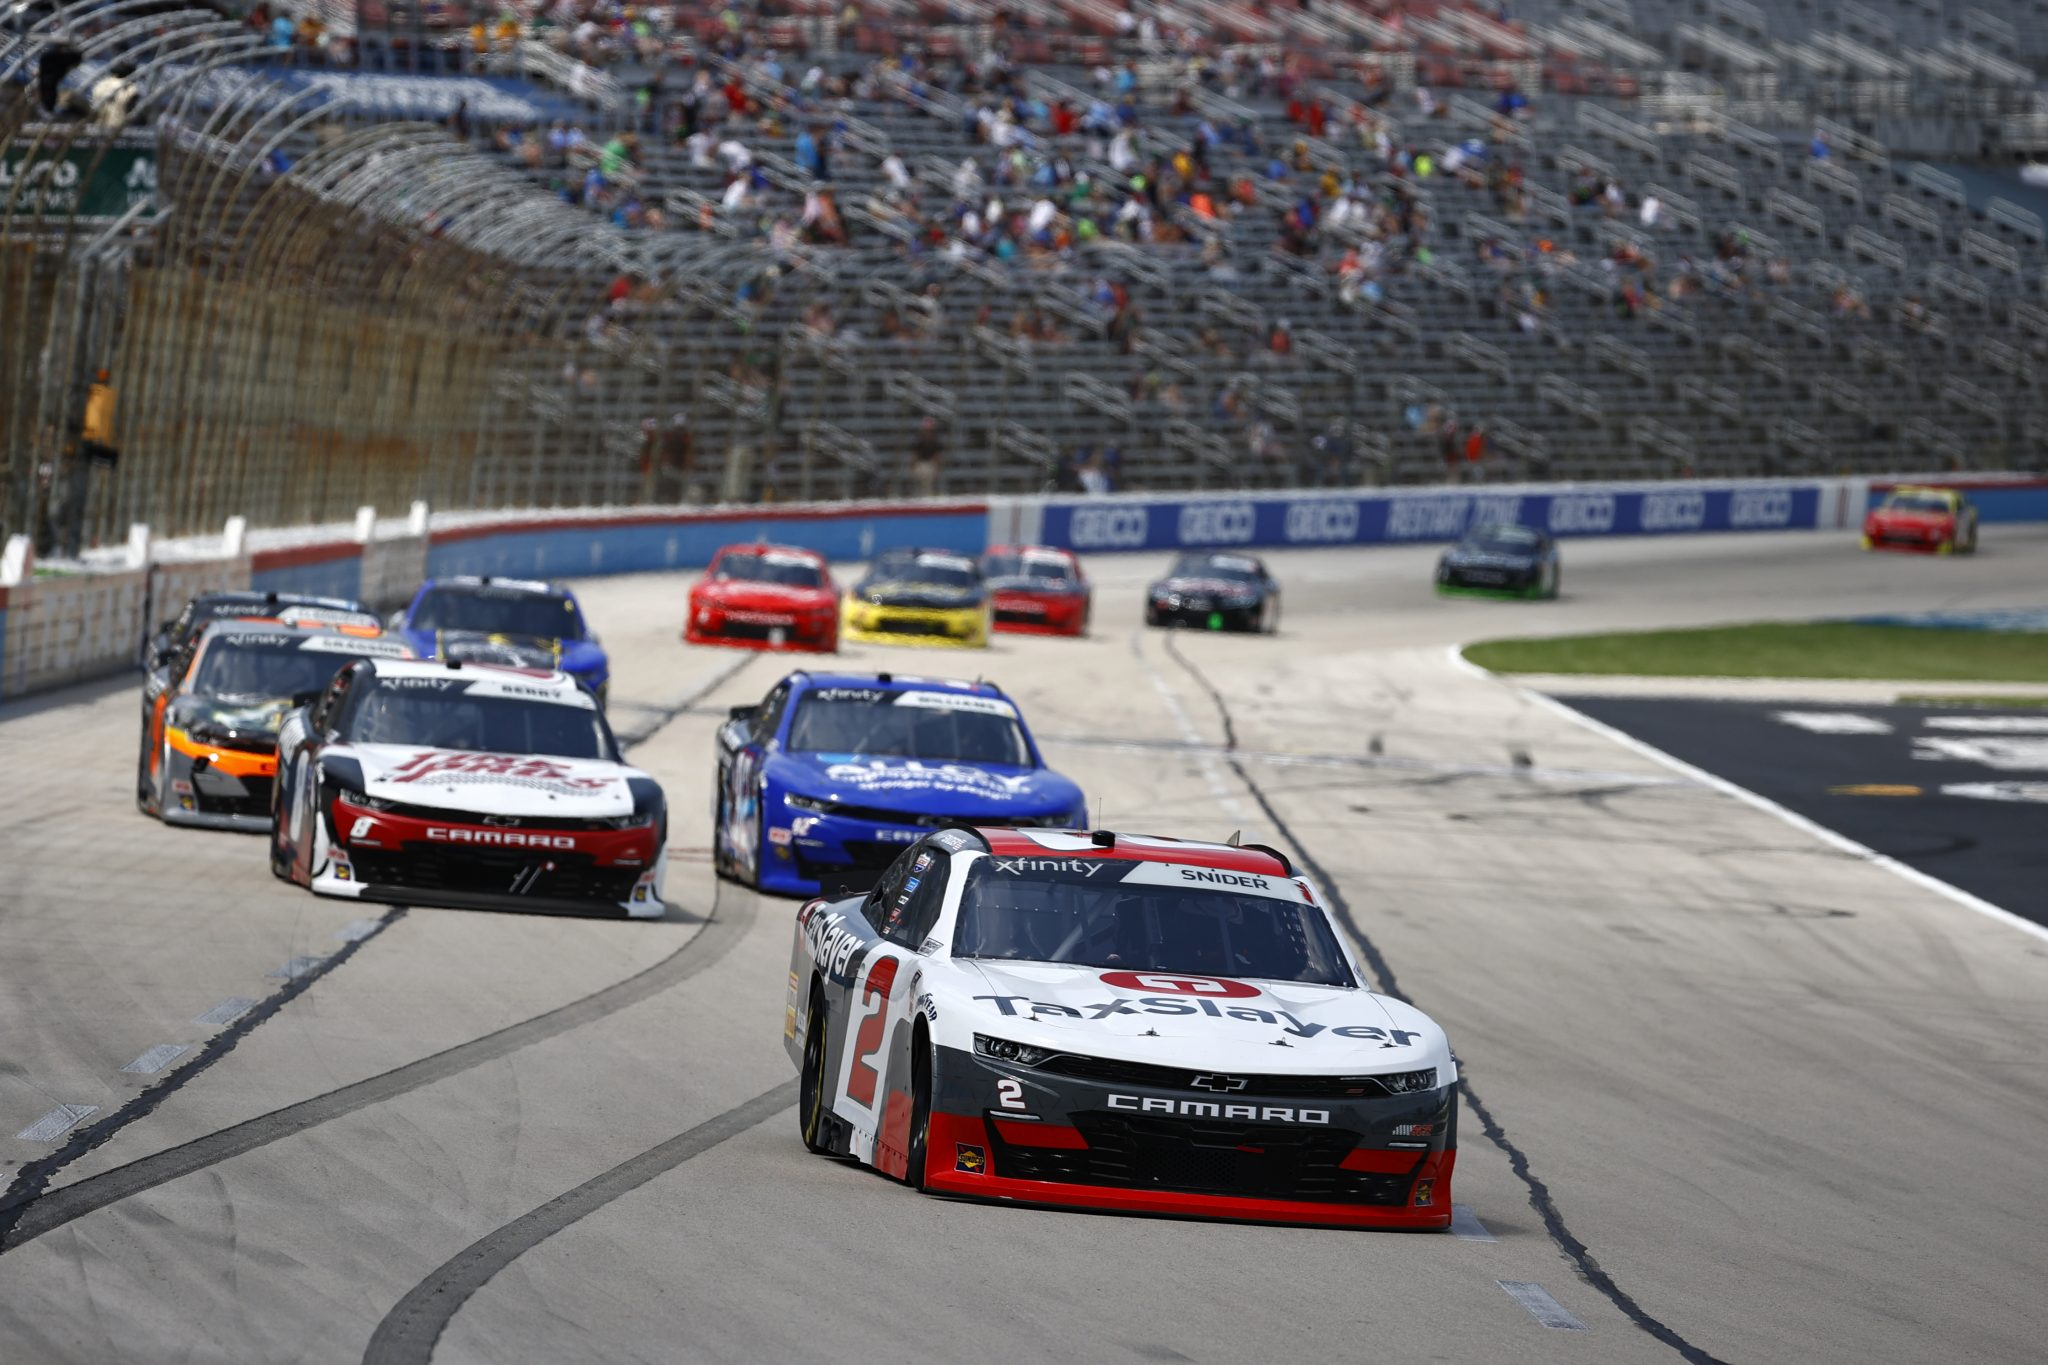 FORT WORTH, TEXAS - JUNE 12: Myatt Snider, driver of the #2 TaxSlayer Chevrolet,leads the field during the NASCAR Xfinity Series Alsco Uniforms 250 at Texas Motor Speedway on June 12, 2021 in Fort Worth, Texas. (Photo by Jared C. Tilton/Getty Images) | Getty Images